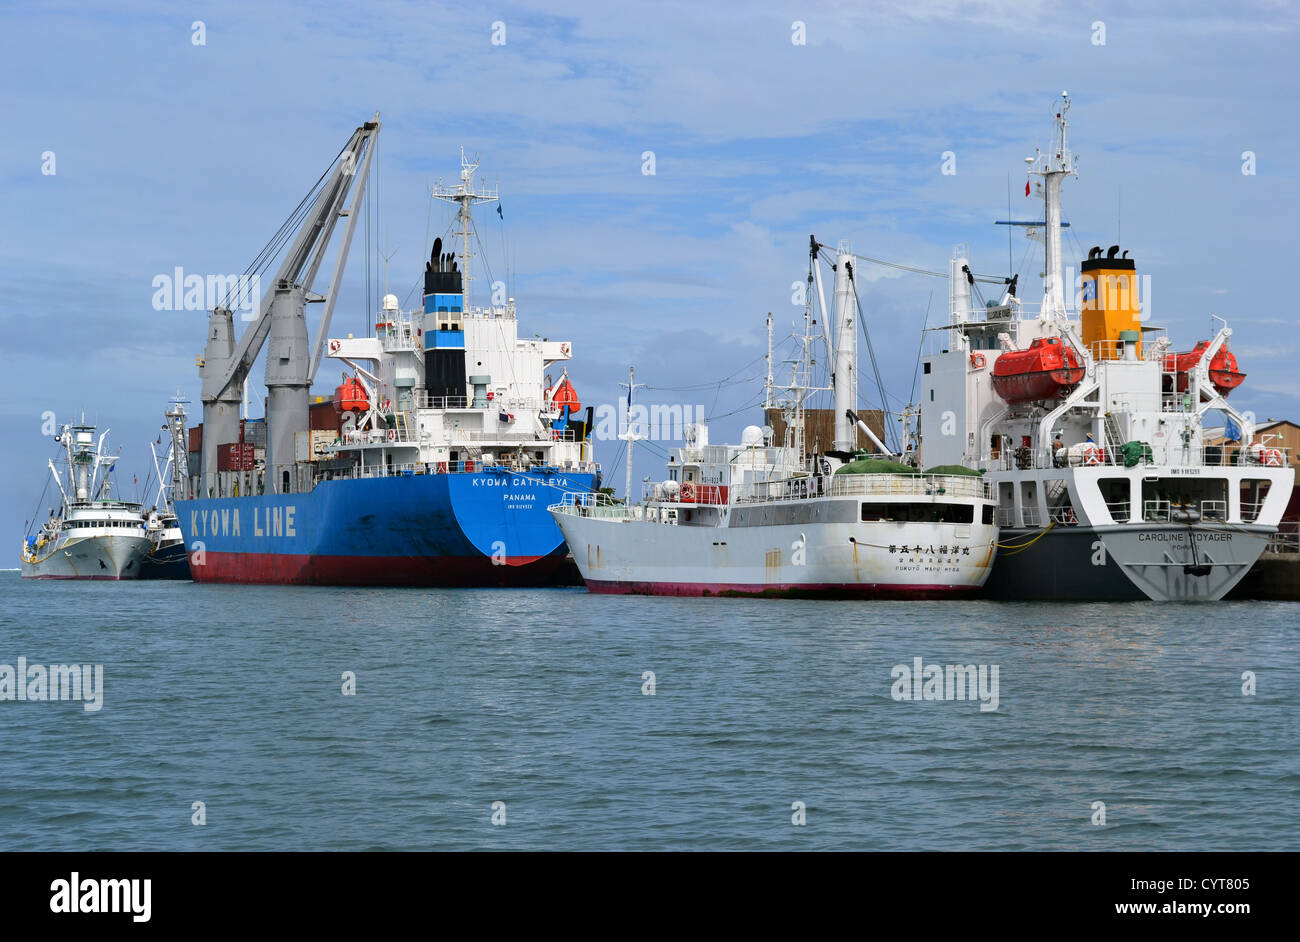 Fishing and cargo ships docked in Pohnpei, Federated States of Micronesia - Stock Image